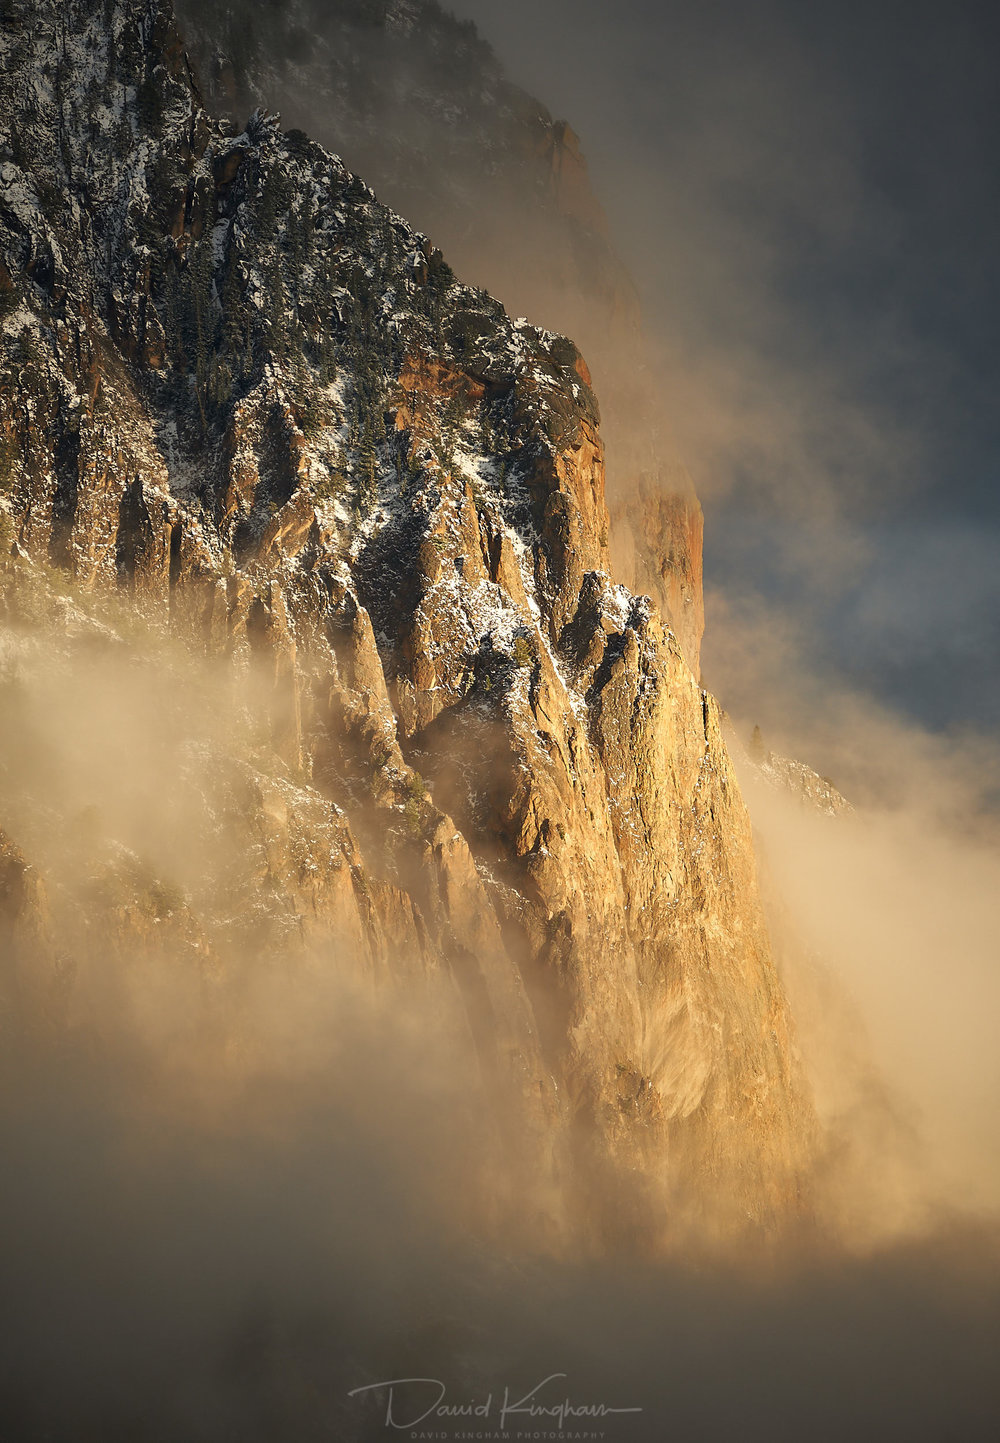 David Kingham  - Fujifilm 100-400 @ 347mm (Equivalent focal length of 520mm), ISO 200, f/5.6, 1/420s Composition - Contrast between cold, cloud shrouded mountain with the warm light of sunset